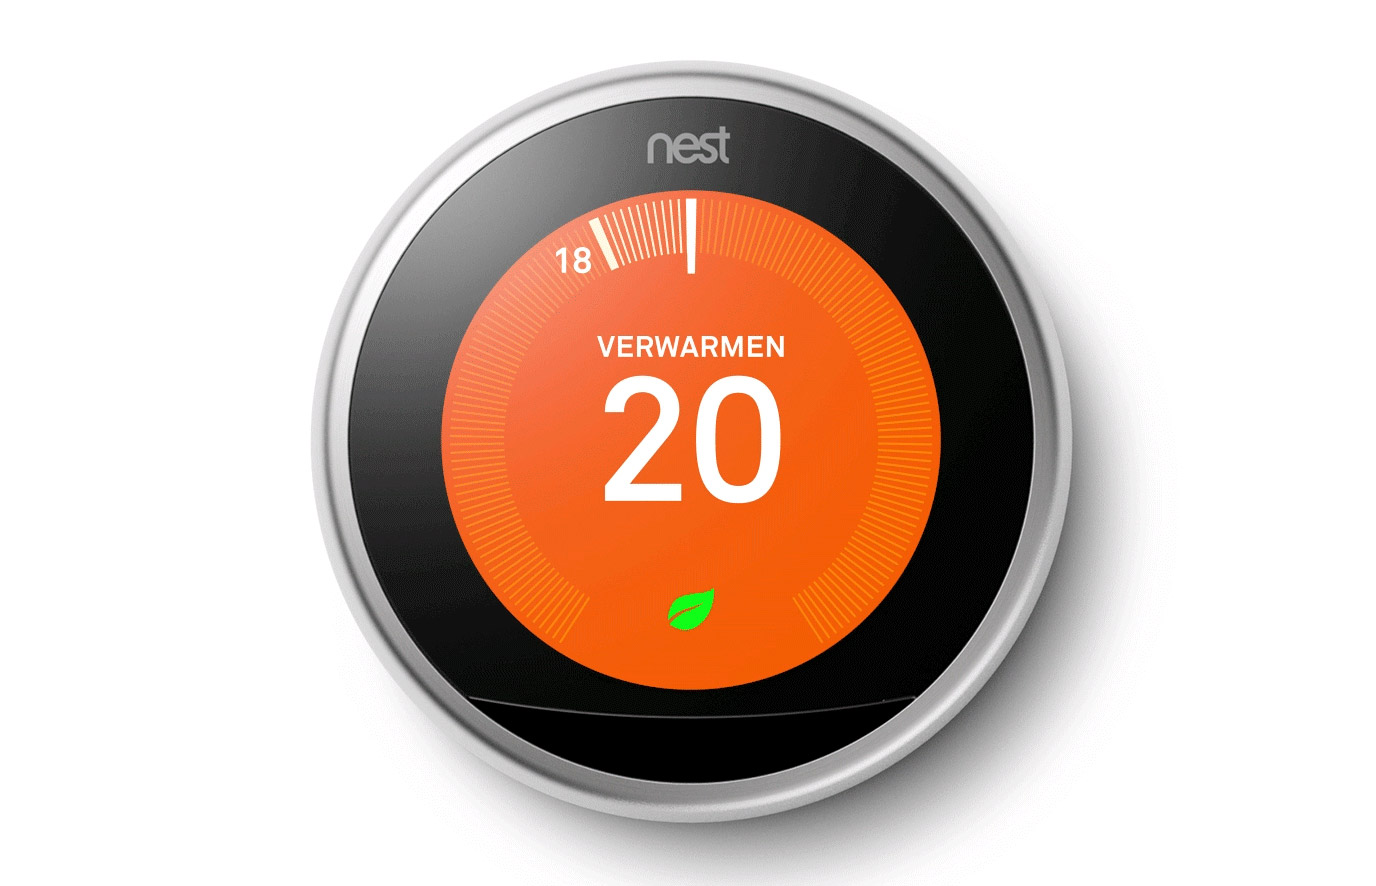 Thermostaat Elektrische Vloerverwarming Vervangen Review Nest Thermostaat V3 Gadgetgear Nl